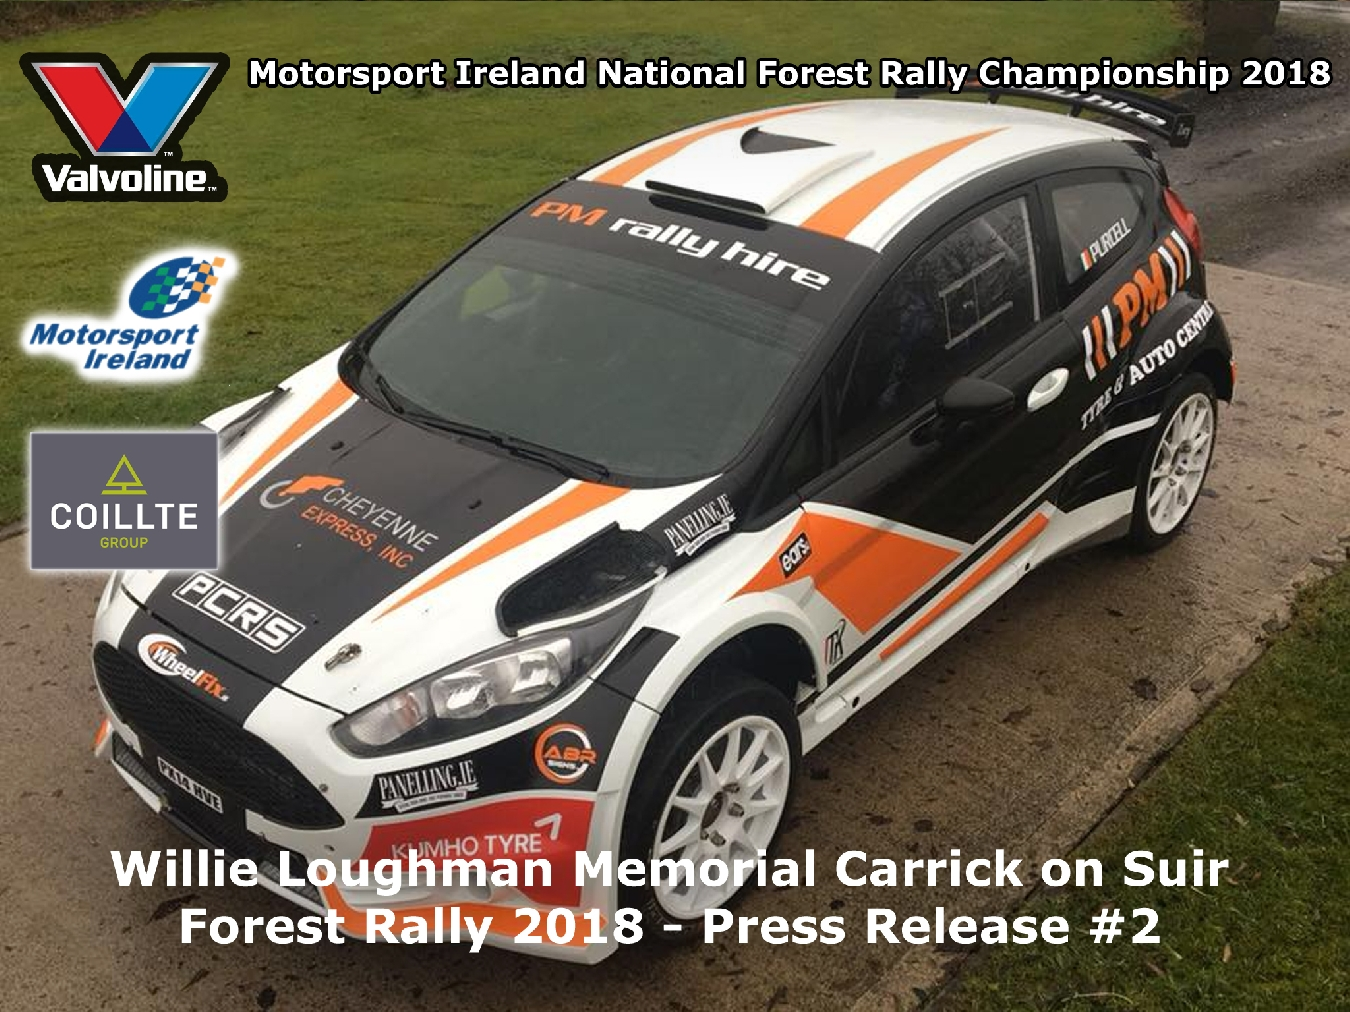 Entries roll in for round 1 of the Valvoline Motorsport Ireland National Forest Rally Championship!